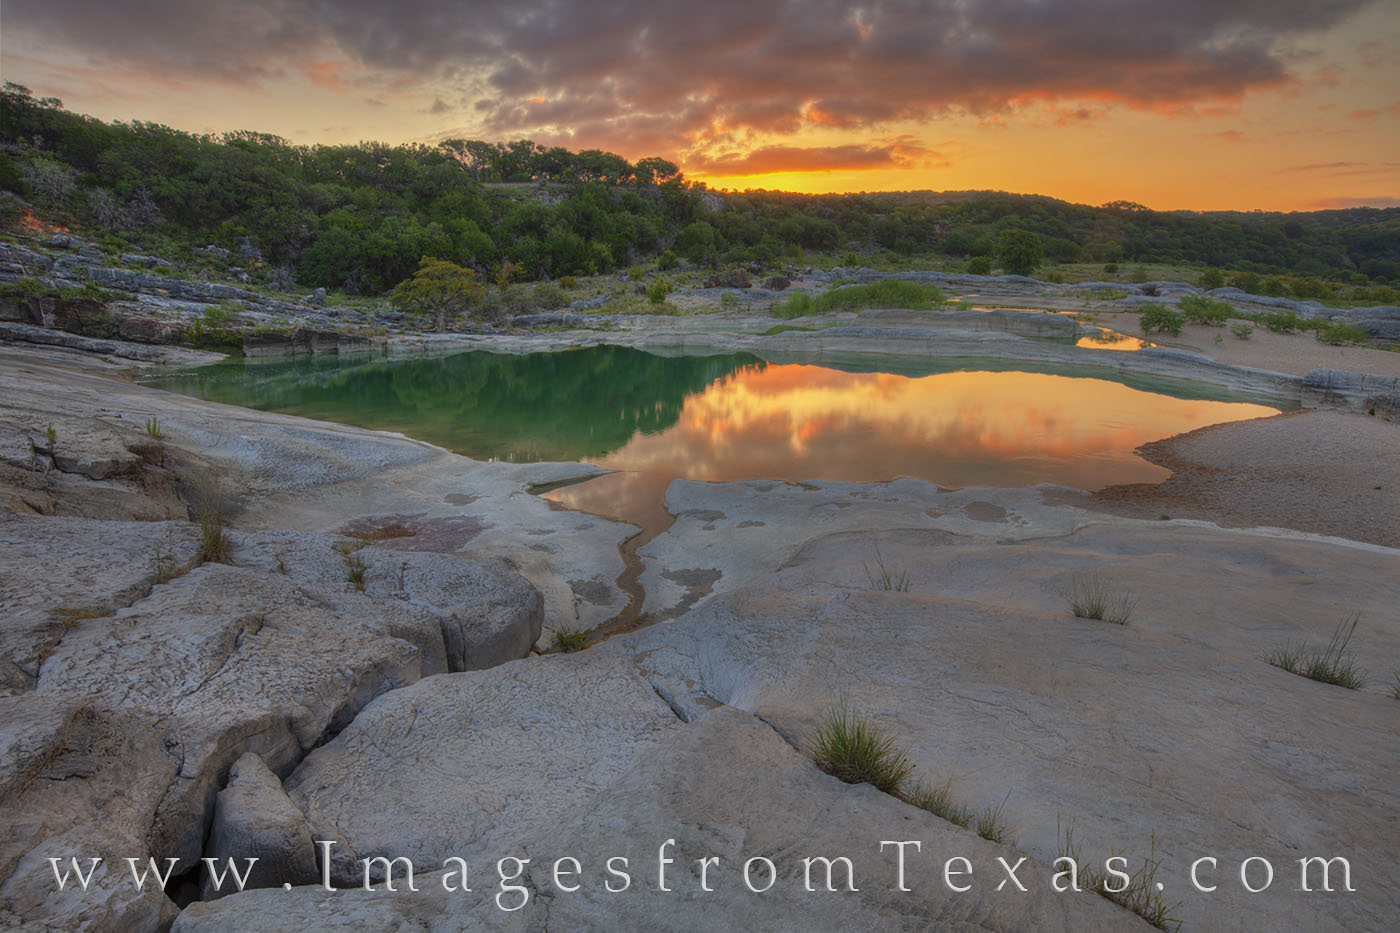 water, pedernales river, river, sunrise, morning, orange, texas hill country, pedernales falls, state parks, limestone, summer, photo